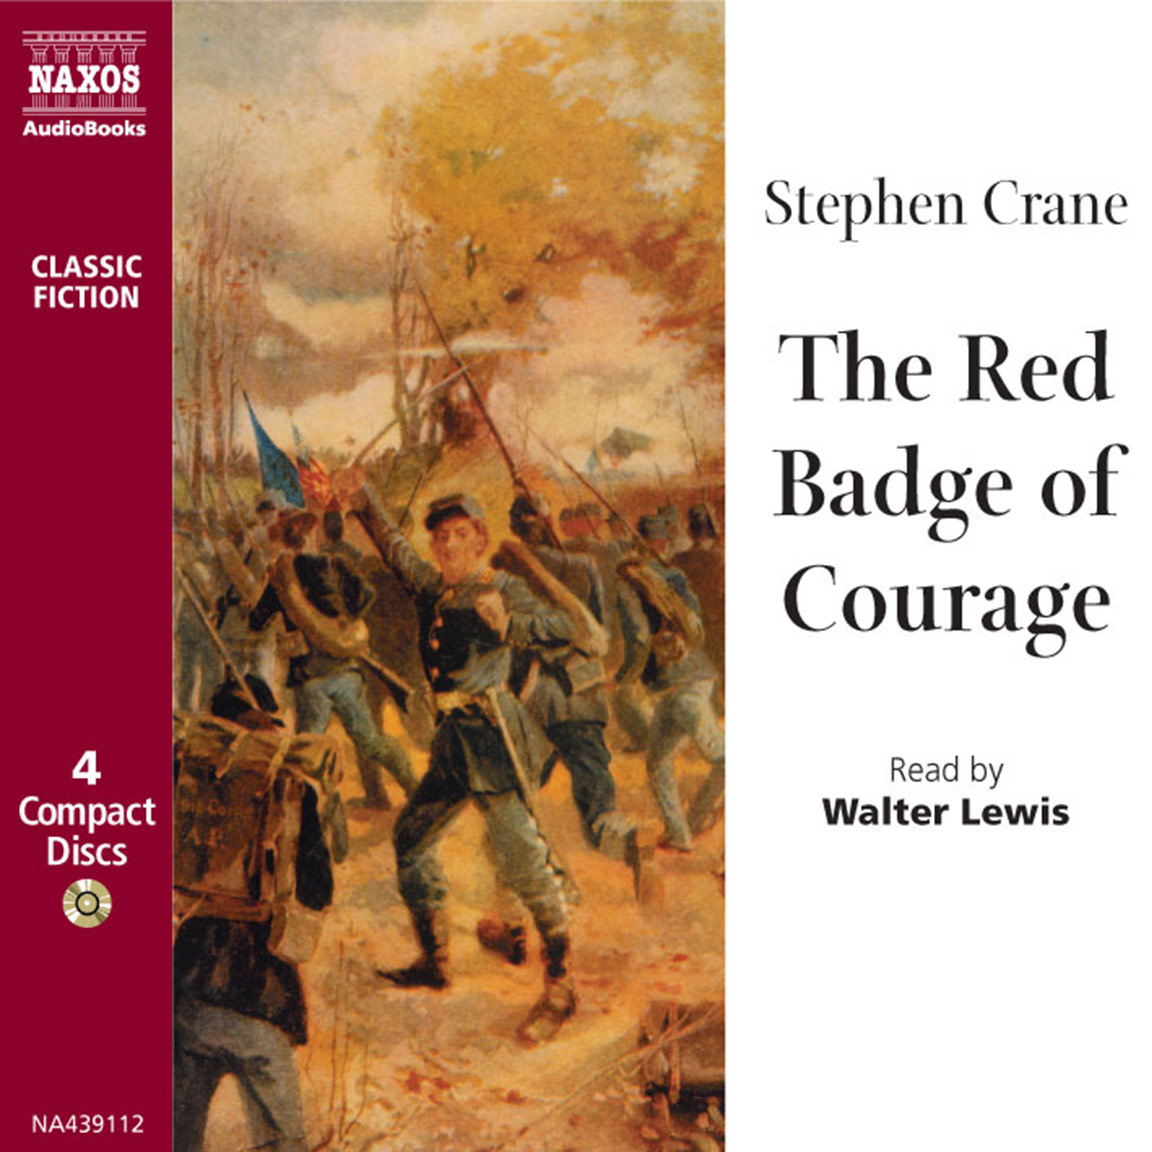 red badge of courage research paper The red badge of courage stephen crane the red badge of courage essays are academic essays for citation these papers were written primarily by students and provide critical analysis of red badge of courage by stephen crane.